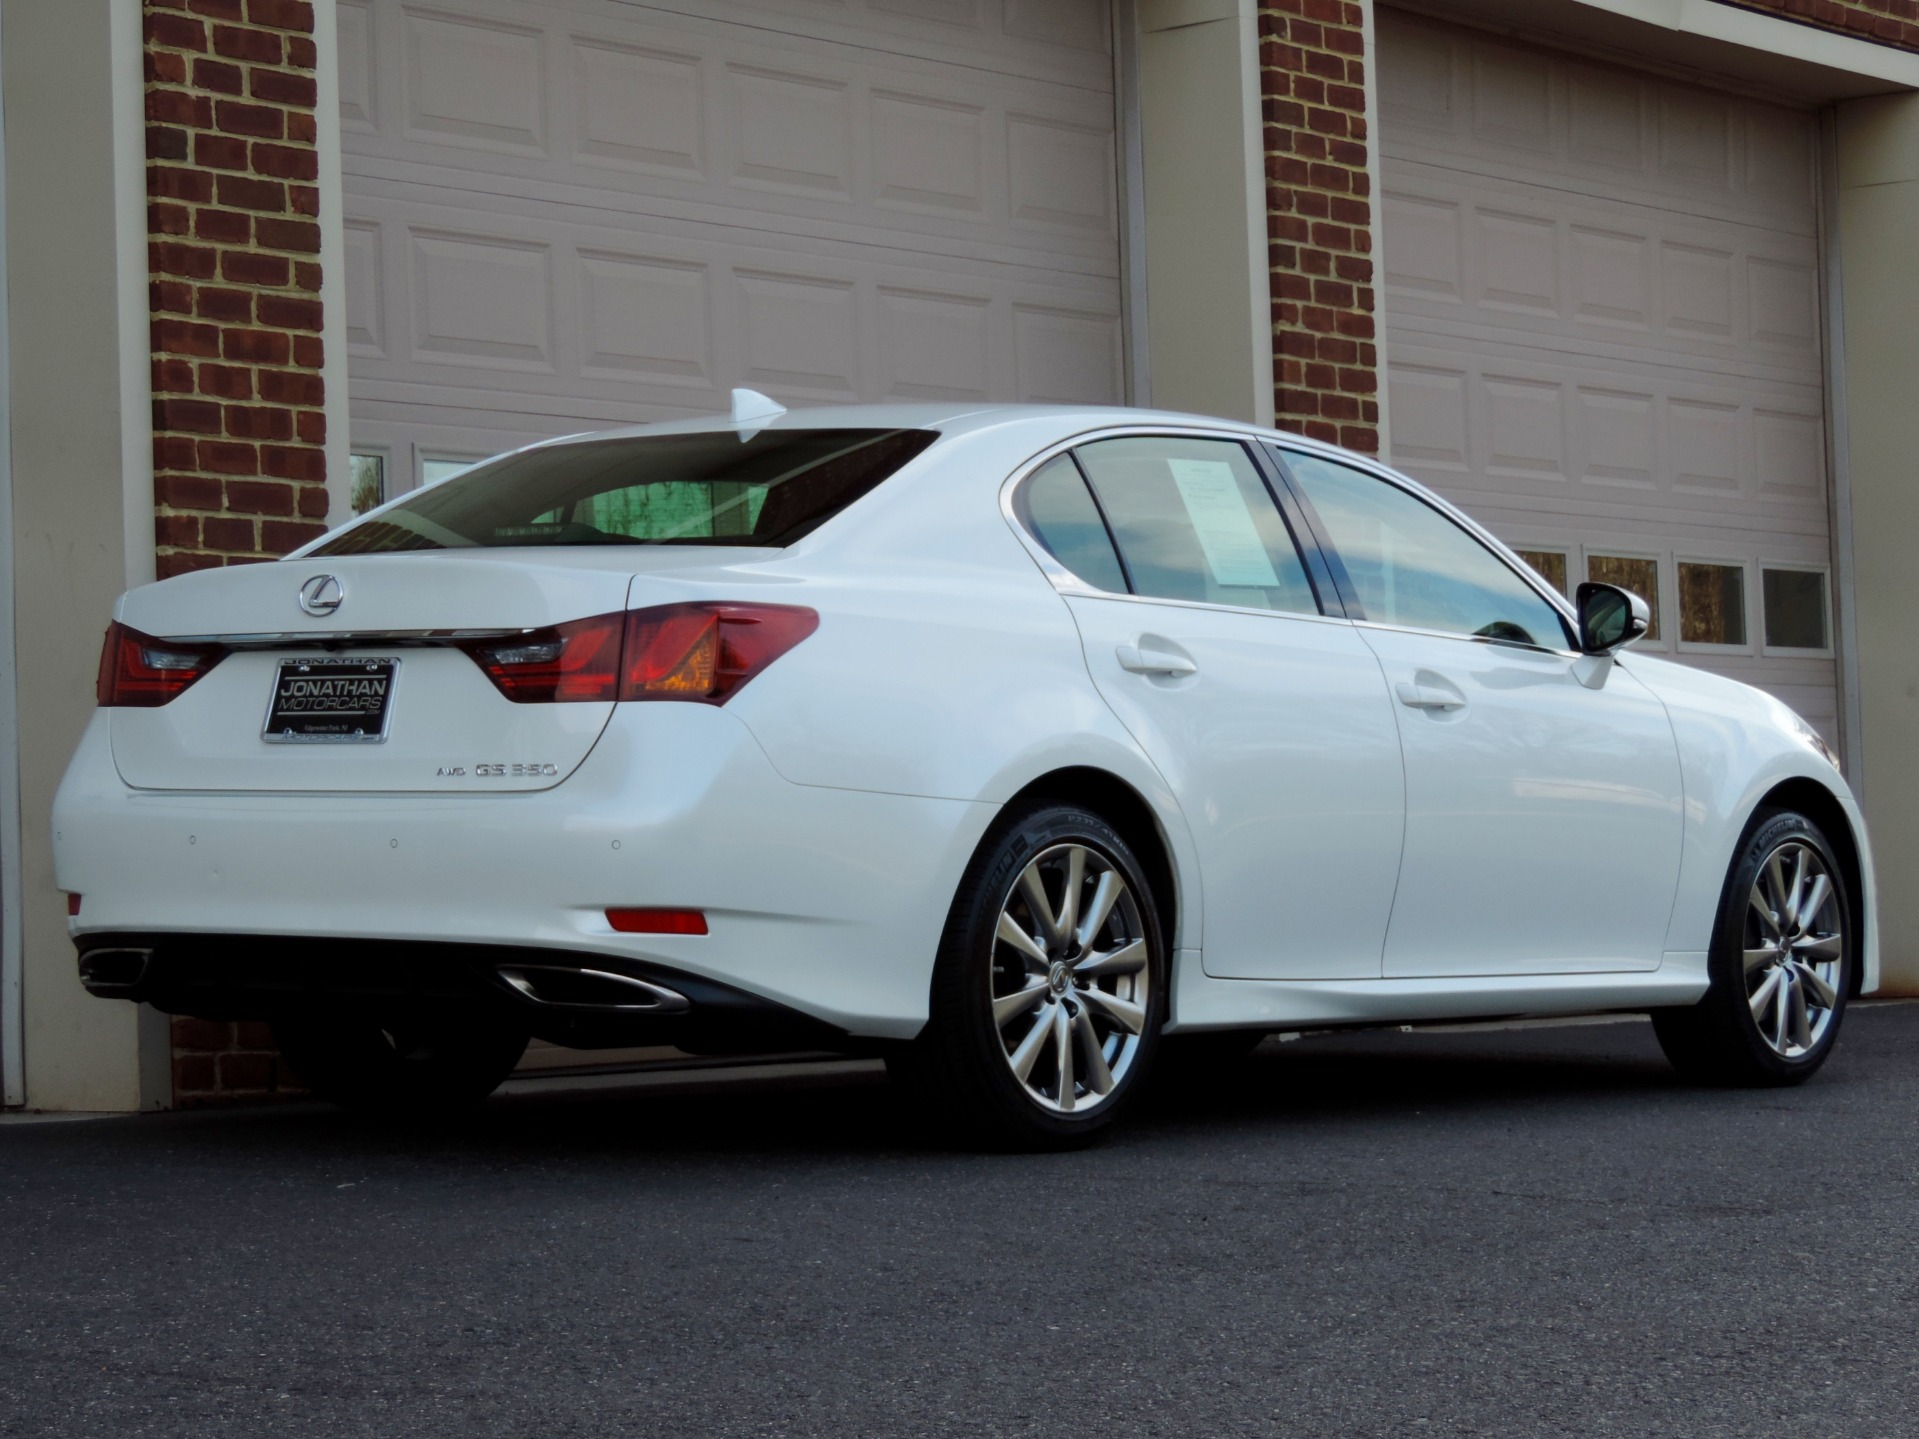 ar fayetteville to lexus sedan used awd size viewer full photo see sale for gs in click